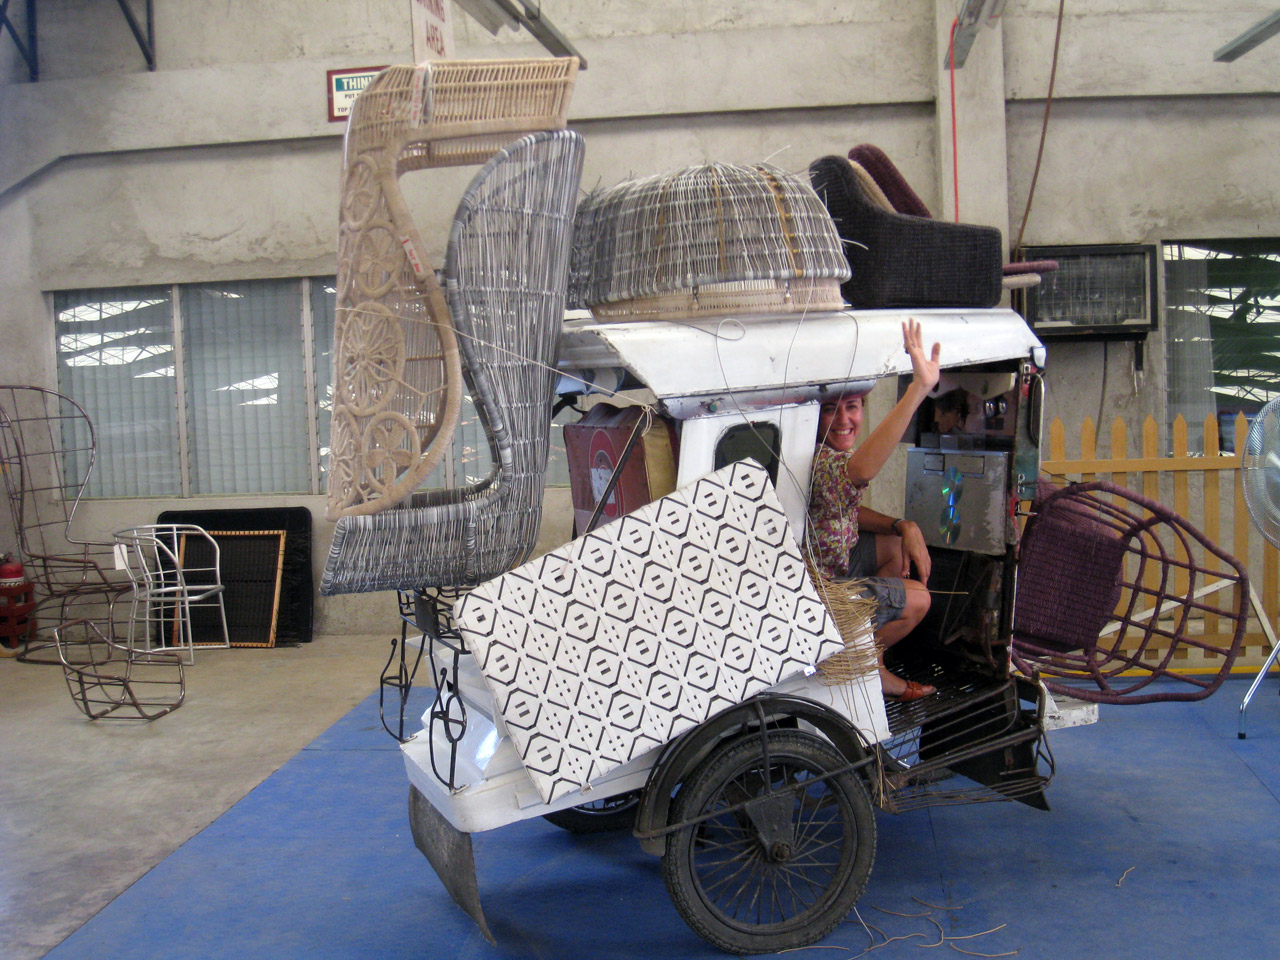 Patricia moving furniture in the Philippines, Chrinoline chair B&B Italia.